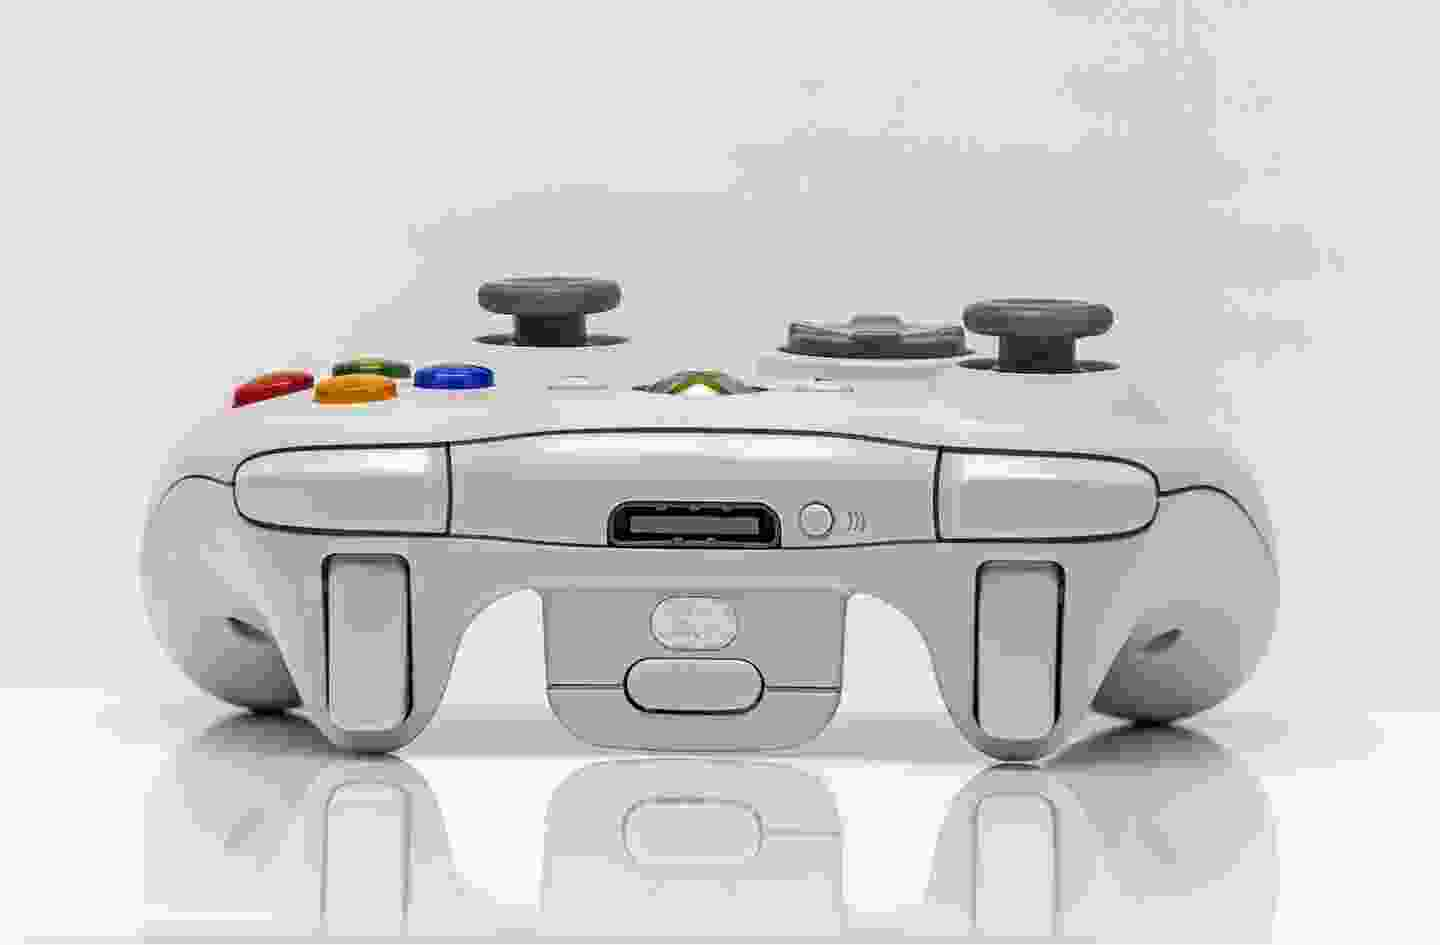 Changi Airport has the games consoles you've been missing from home, ready to play (Shutterstock)